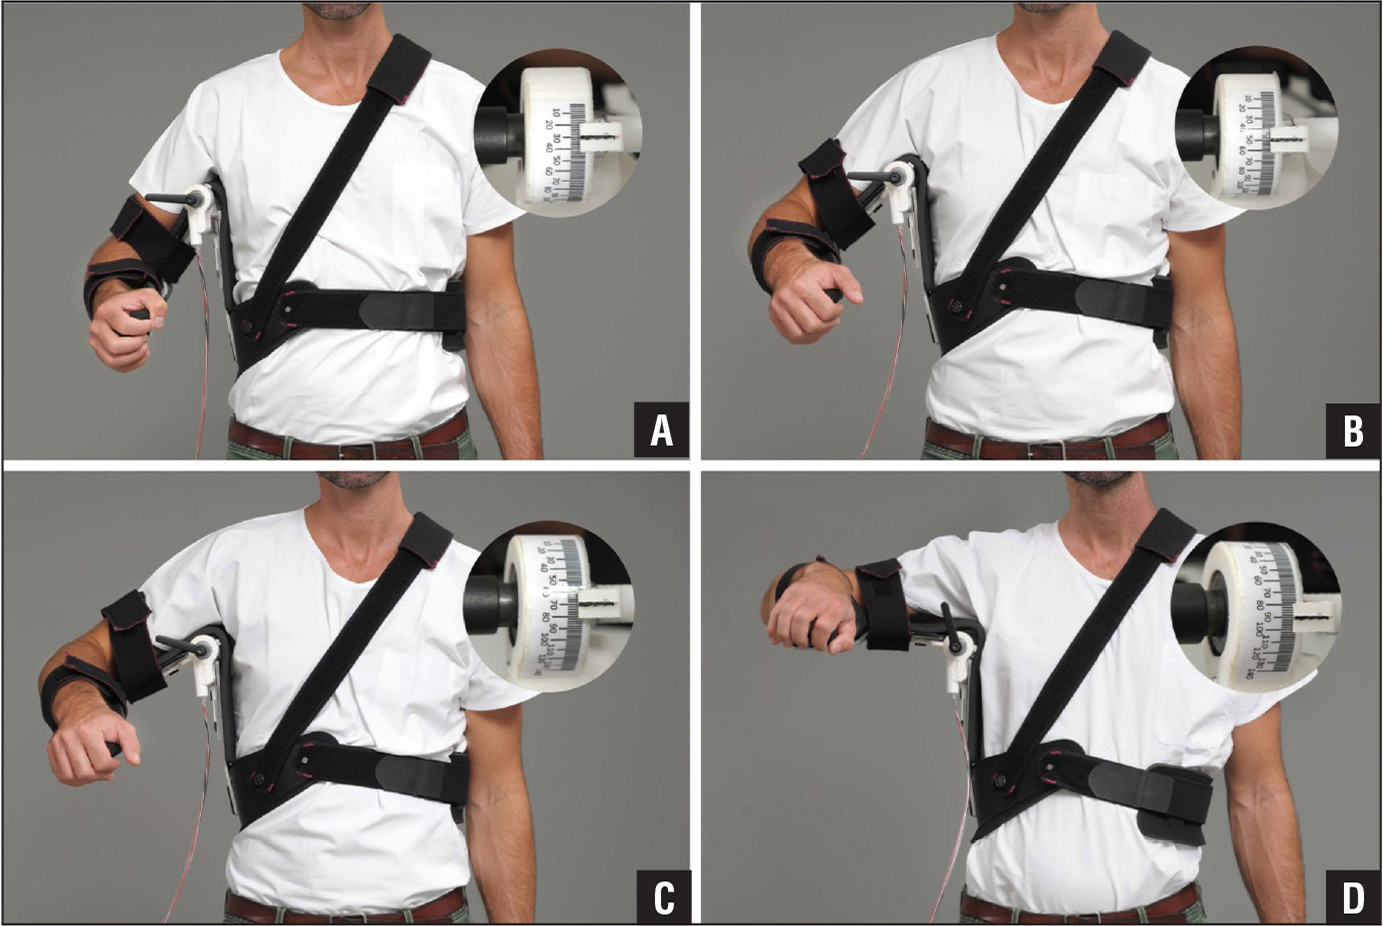 Arm position in different abduction angles in the shoulder abduction brace: 30° (A), 50° (B), 70° (C), and 90° (D).